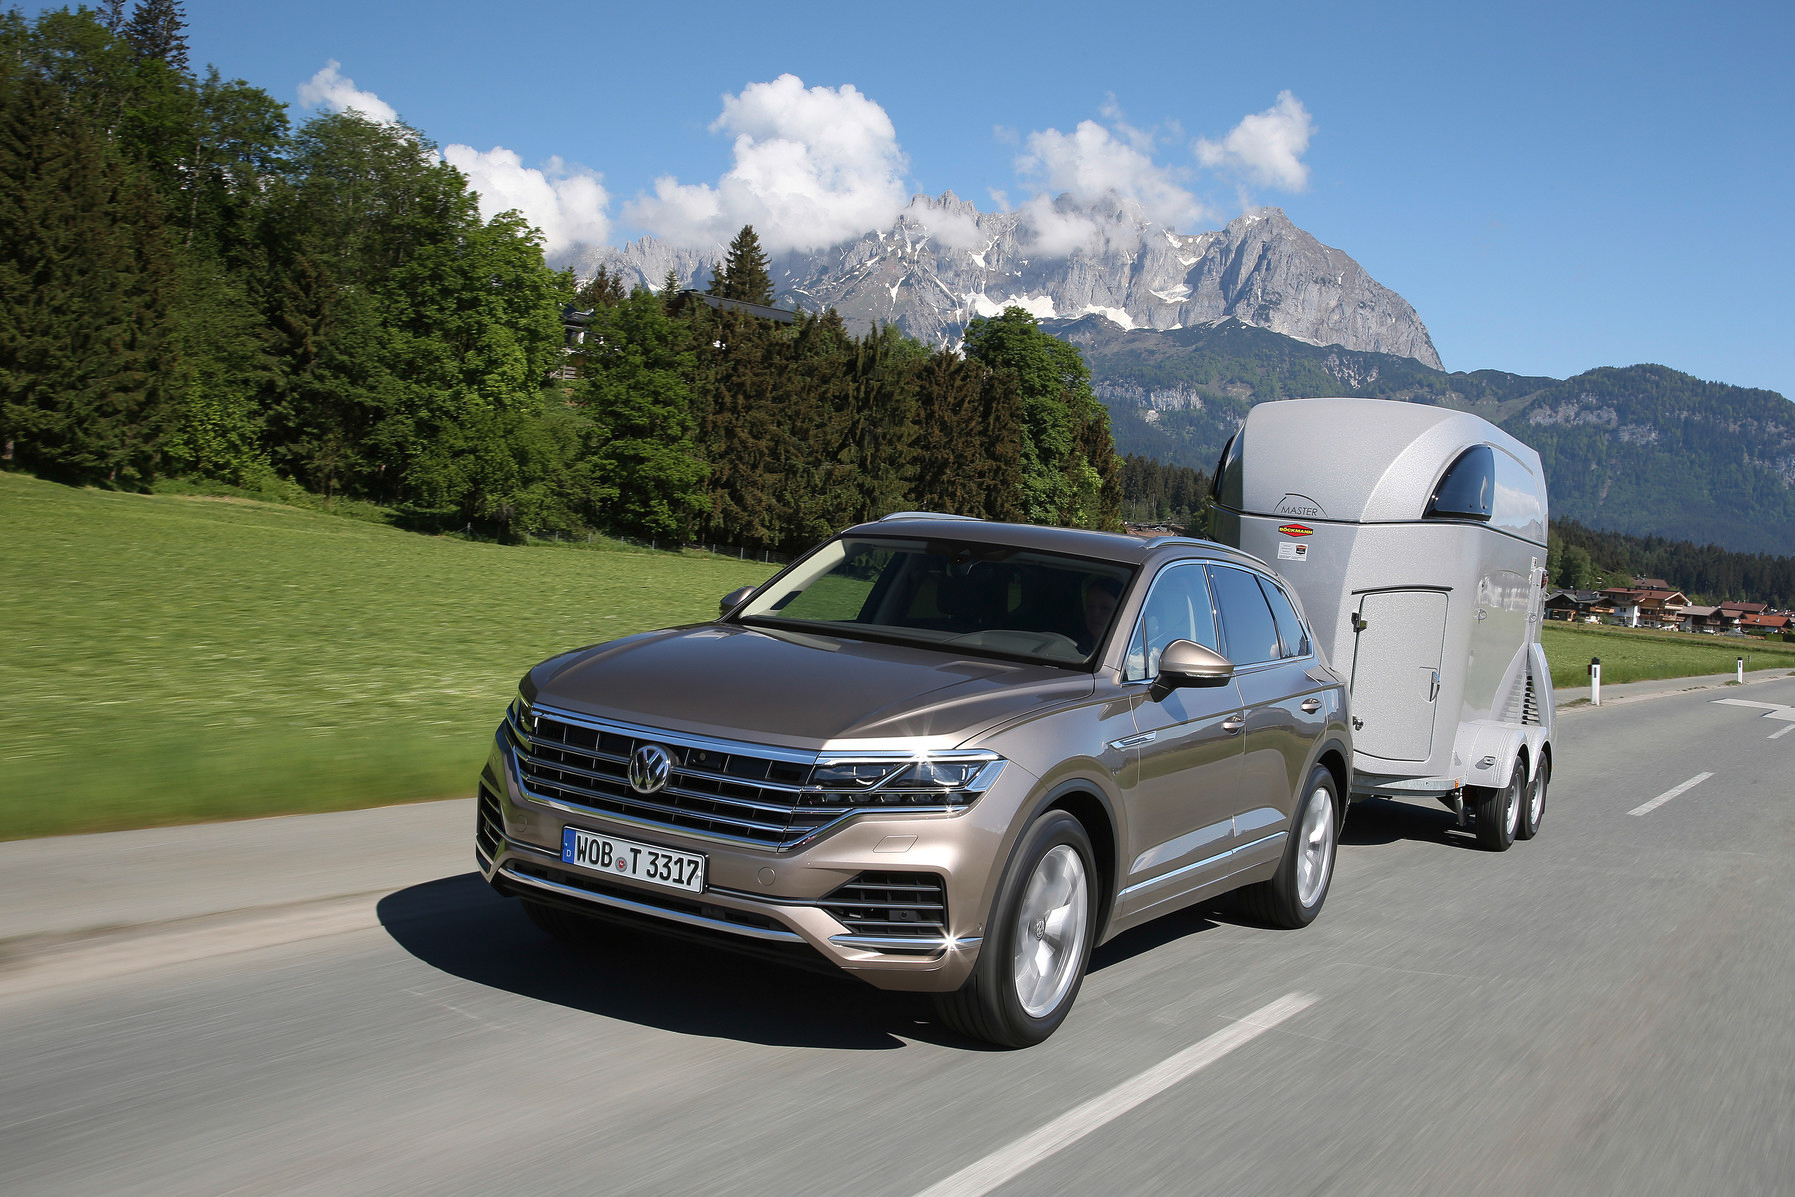 150 Adventure special editions build on the Touareg 190TDI Premium variant in blending luxury comfort with off-road capability will be available in August.